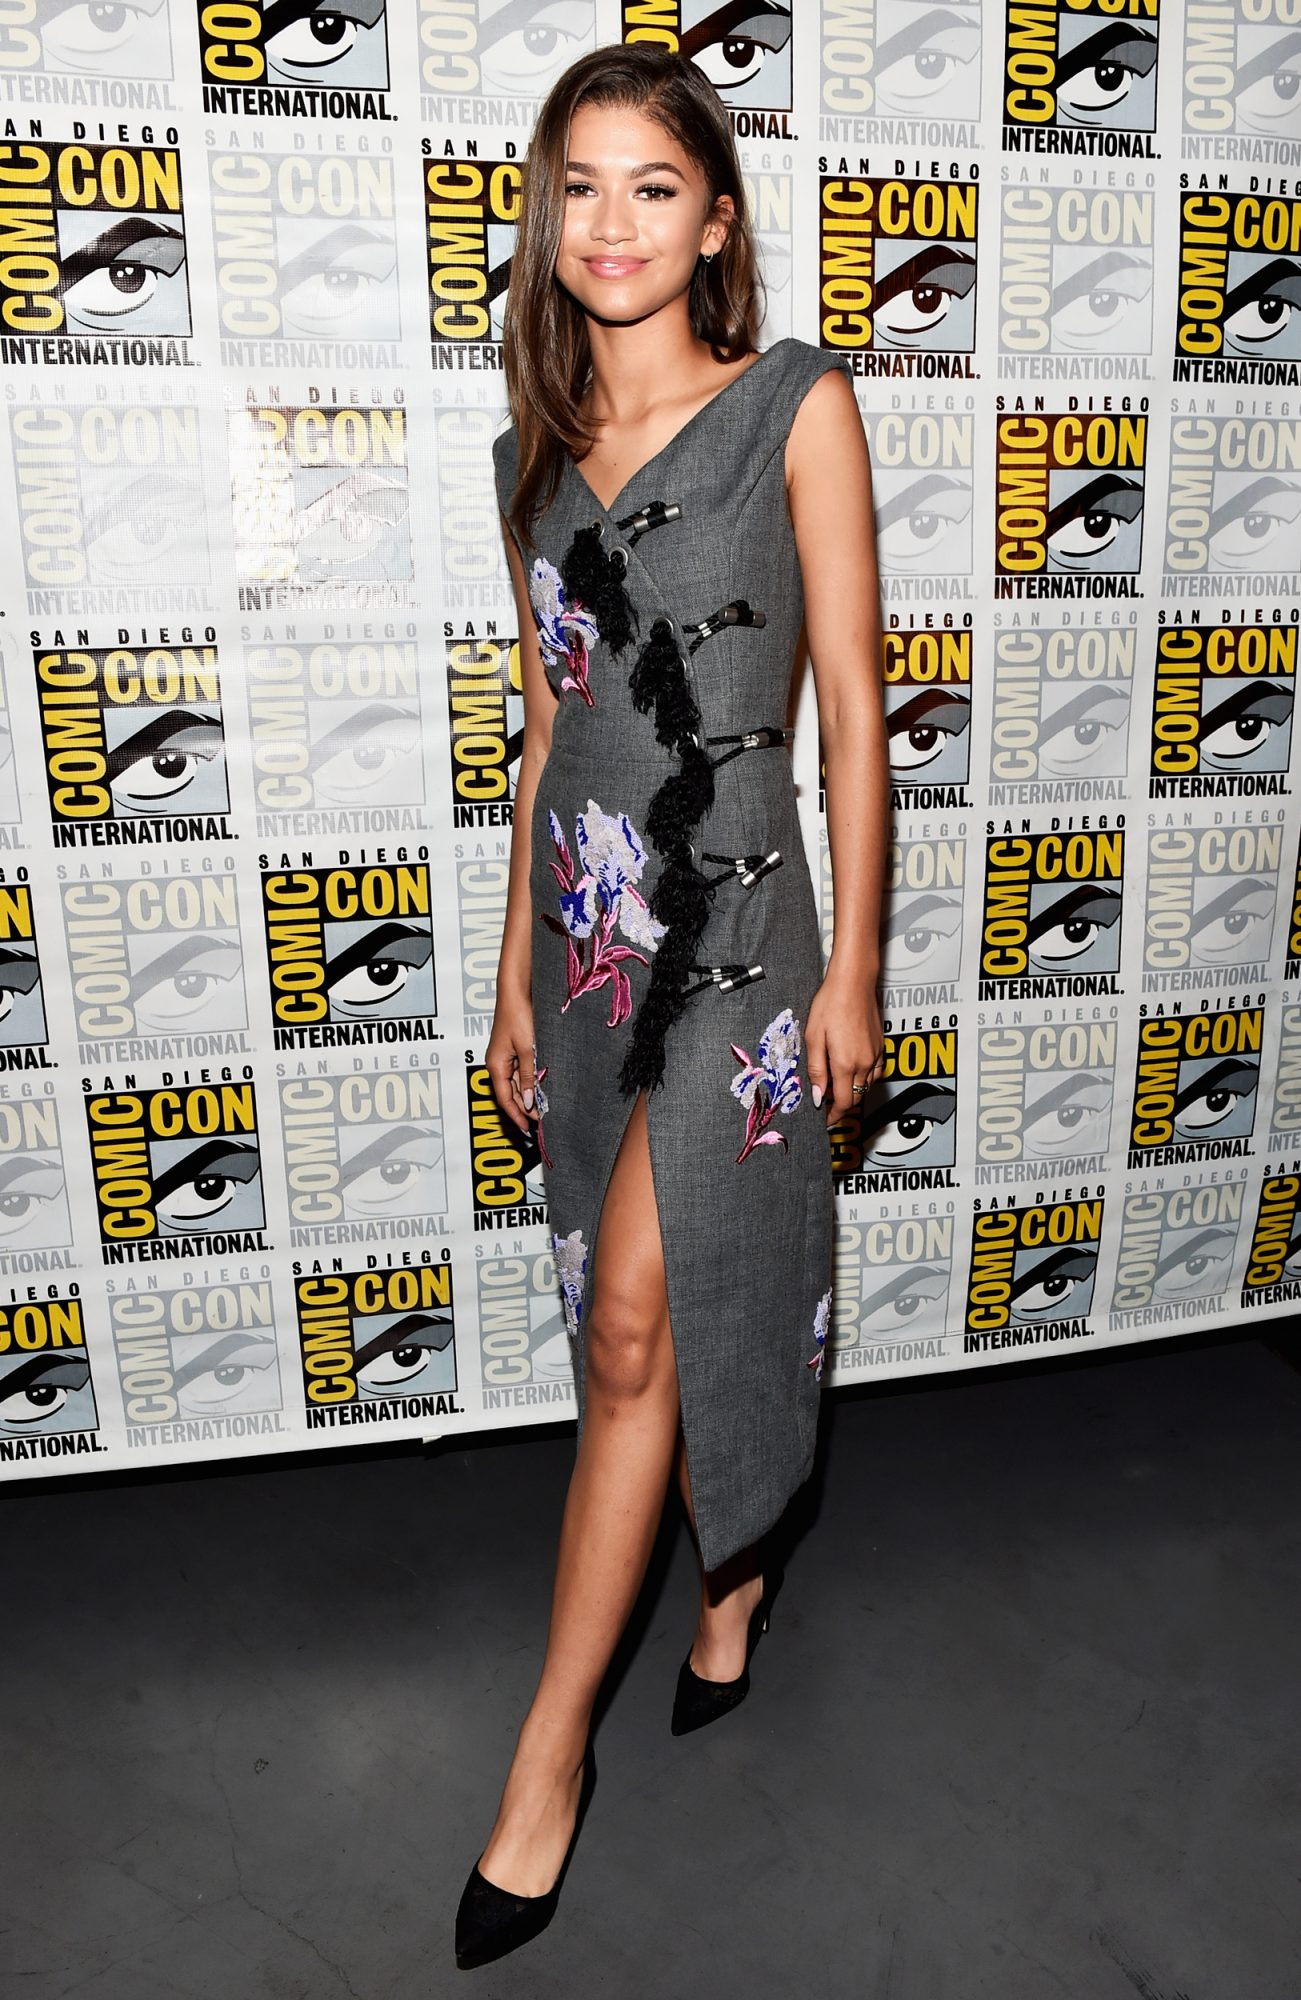 Zendaya - San Diego Comic-Con International 2016 - July 23, 2016